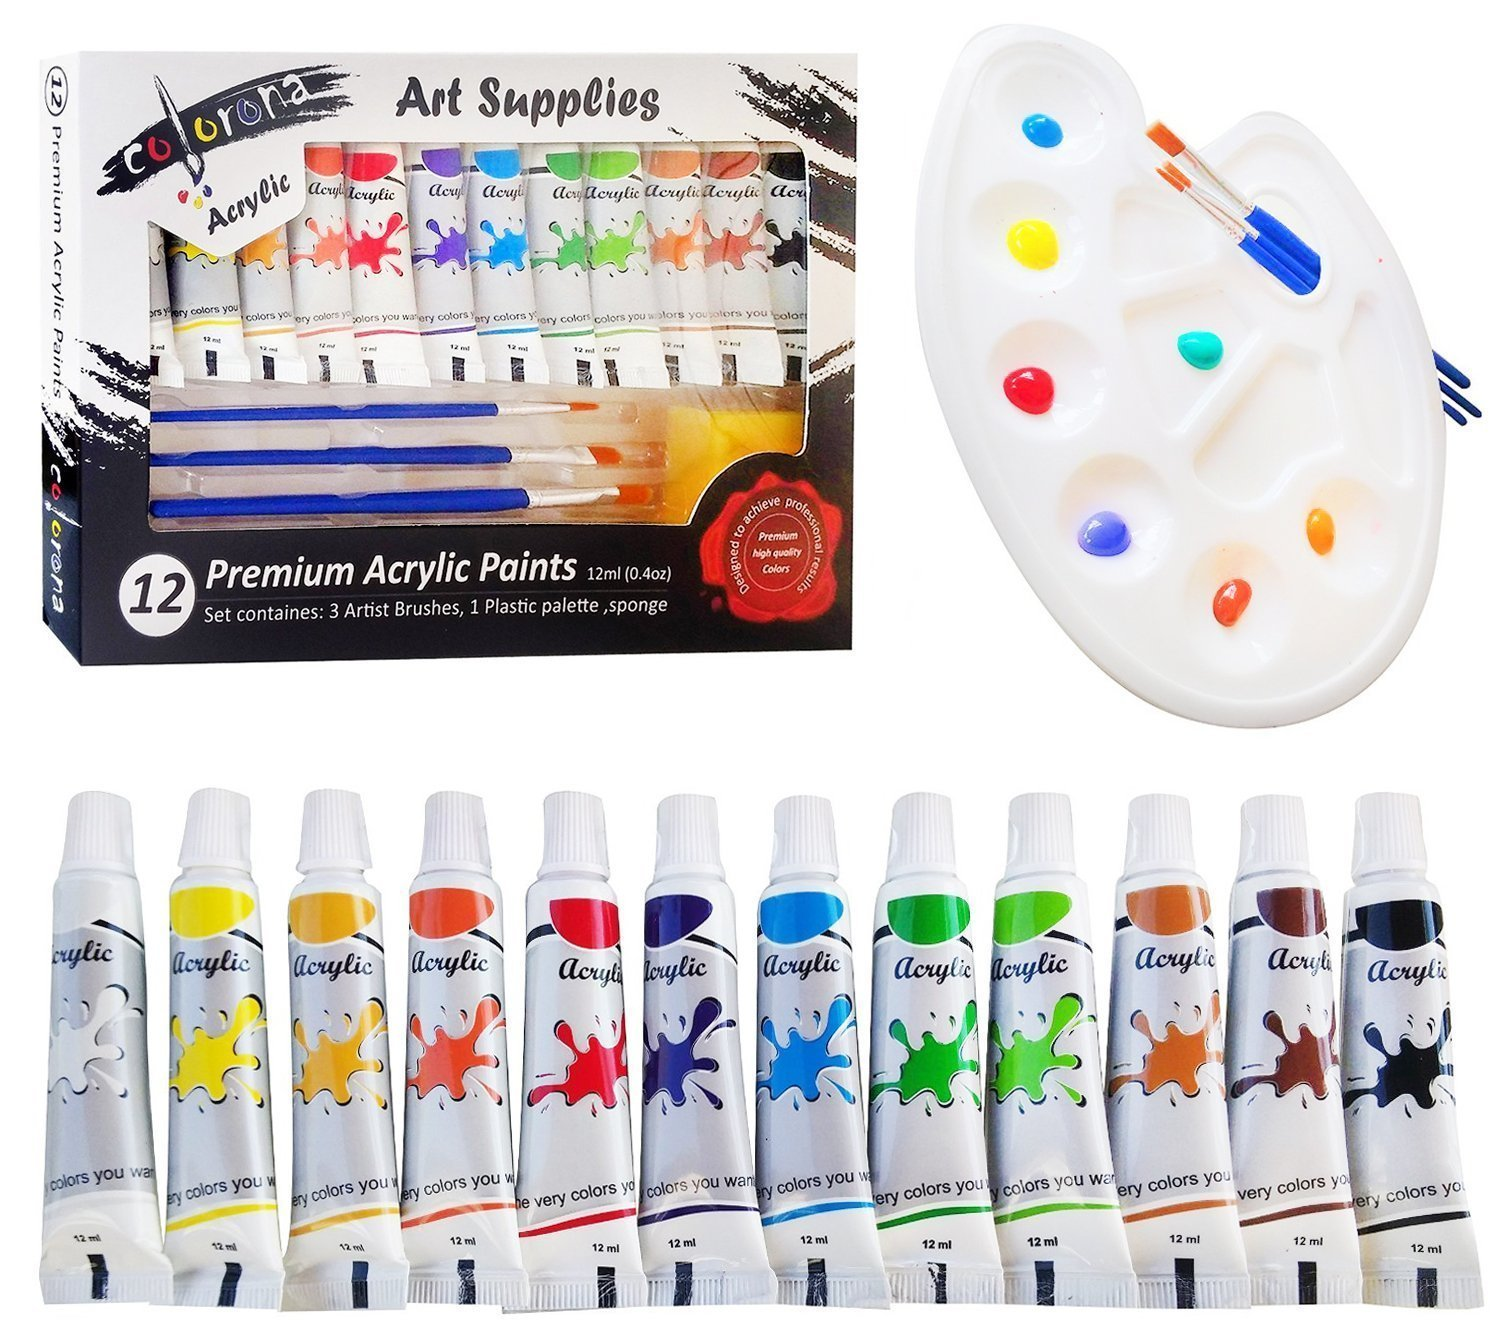 Colorona Acrylic Paint Set with Palette, 3 Paint Brushes and Sponge, 12 ml (12 Colors) For Canvas,Rocks,Wood,Ceramic,Fabric & Crafts. Great For Kids, Beginners,Students & Professional Artist